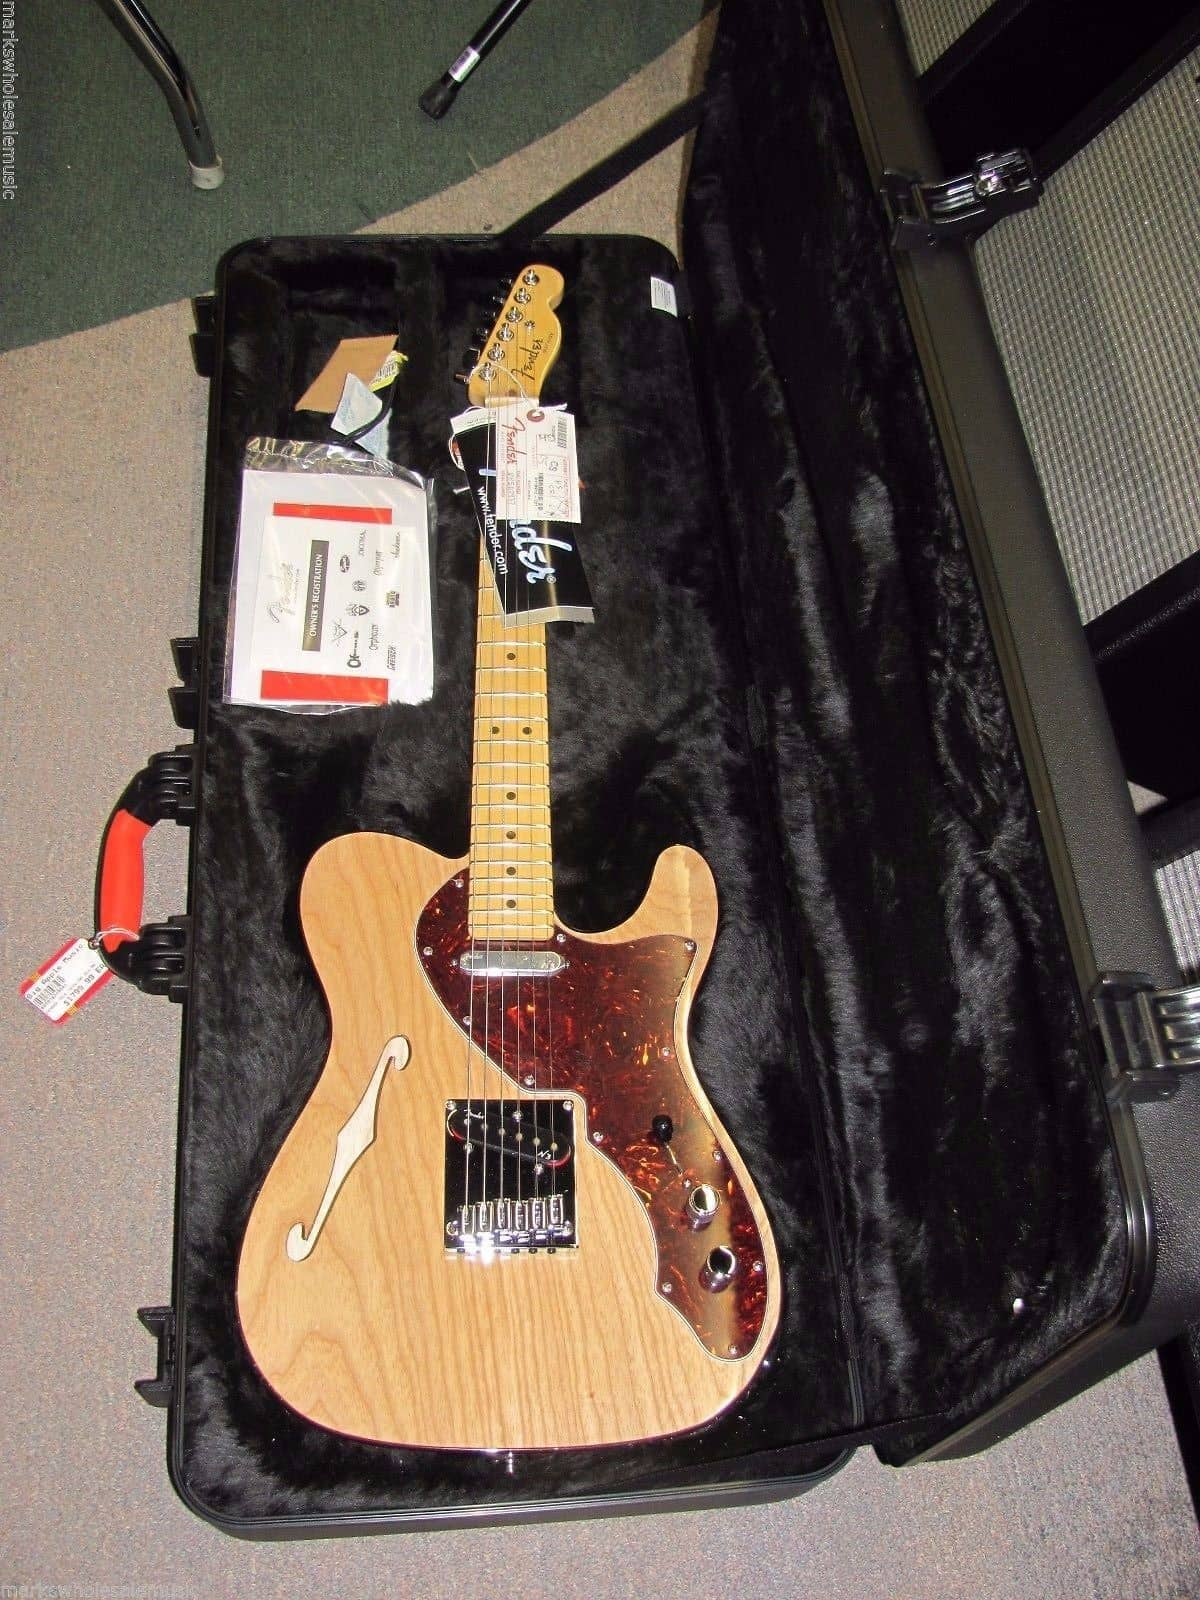 Telecaster Wiring Diagram As Well Fender Telecaster Wiring Diagram On